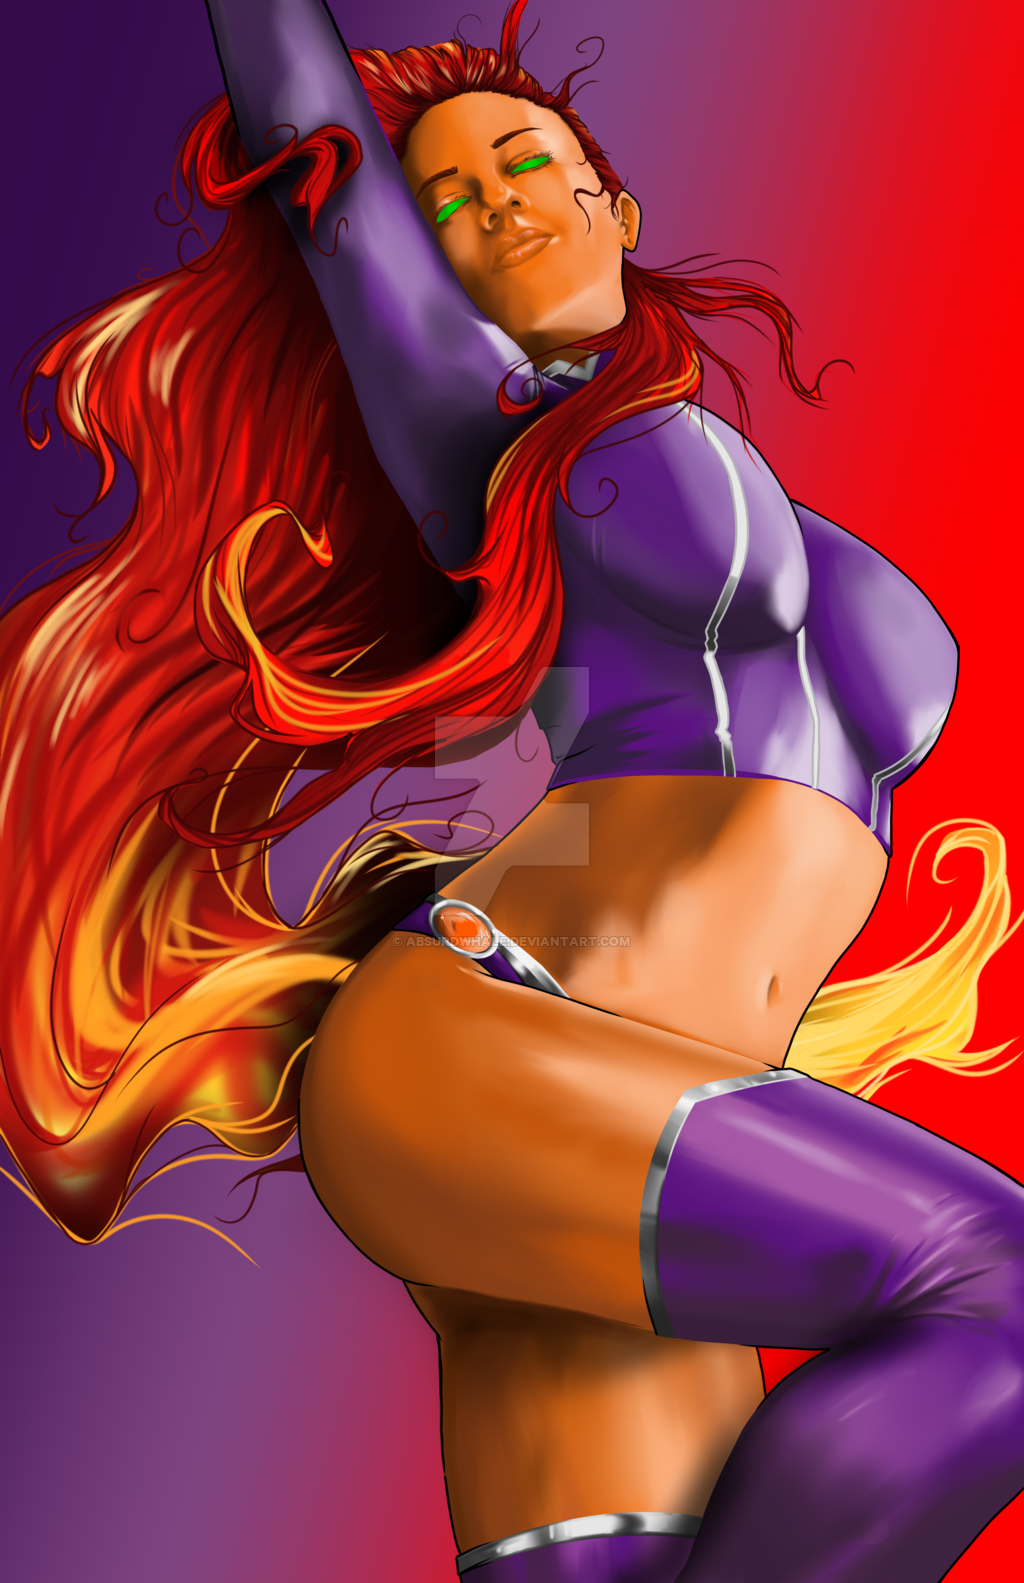 starfire_by_absurdwhale-dc4vjti.png